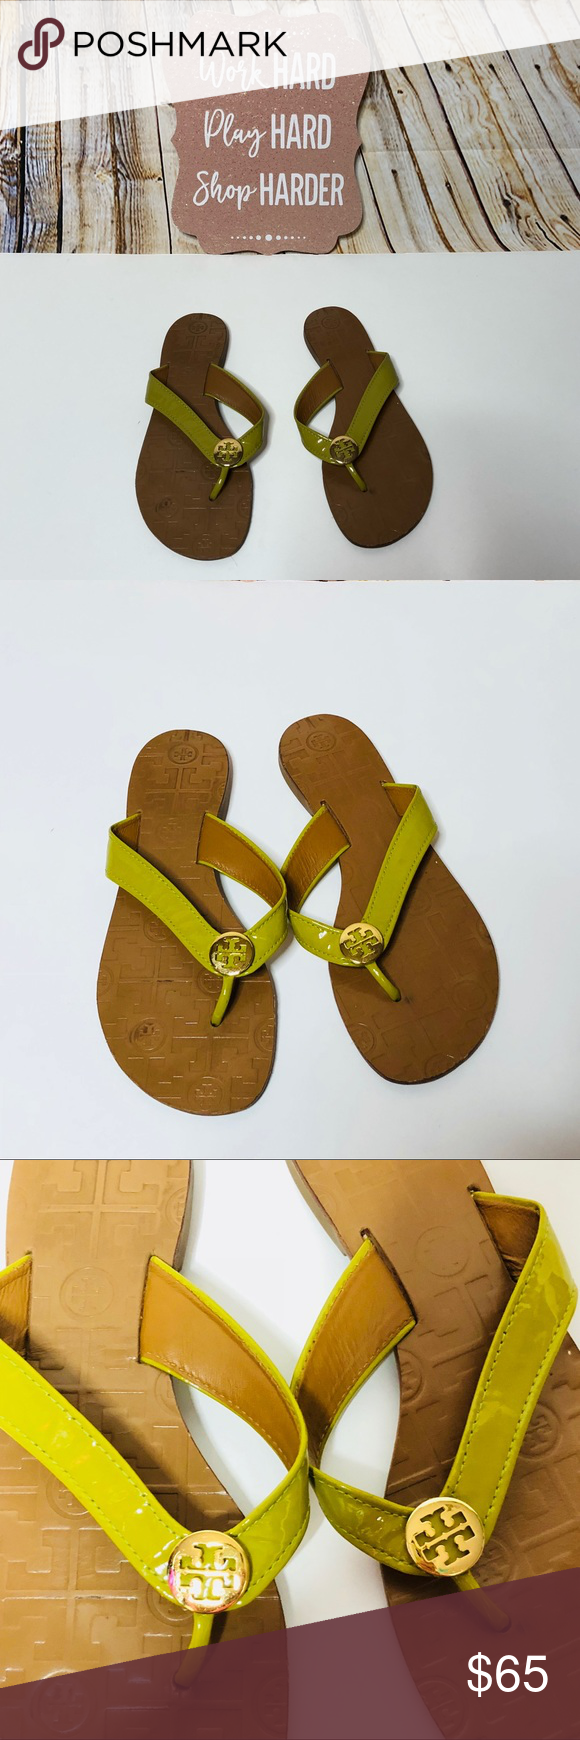 eedbf9166641 Tory Burch Leather Logo Thong Sandals Flip flops 7 Tory Burch Leather Olive  Green Logo Thong Sandals Flip flops Size 7. These are are in great preowned  ...